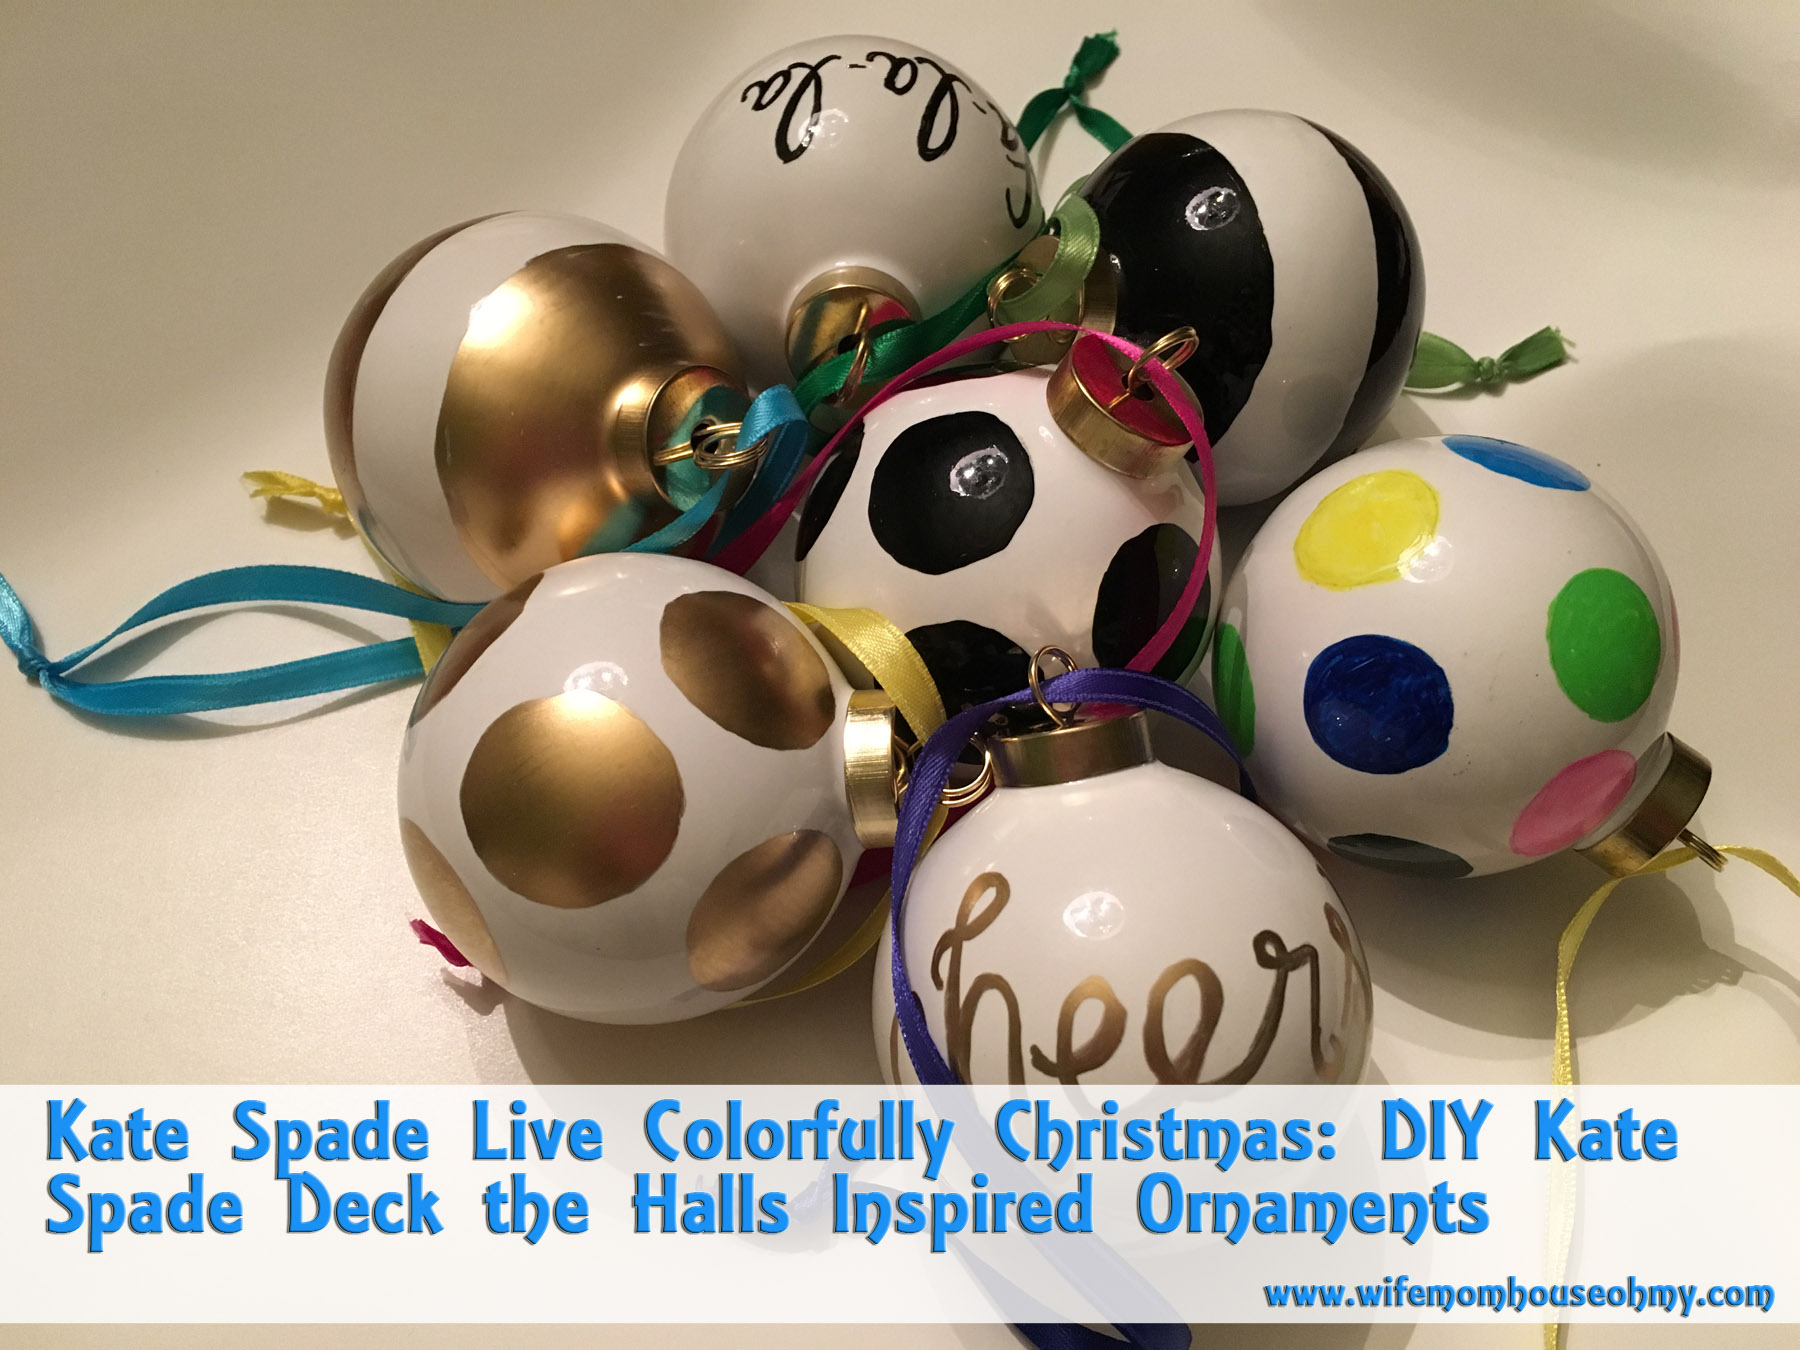 Kate Spade Live Colorfully Christmas: DIY Kate Spade Deck the Halls ...